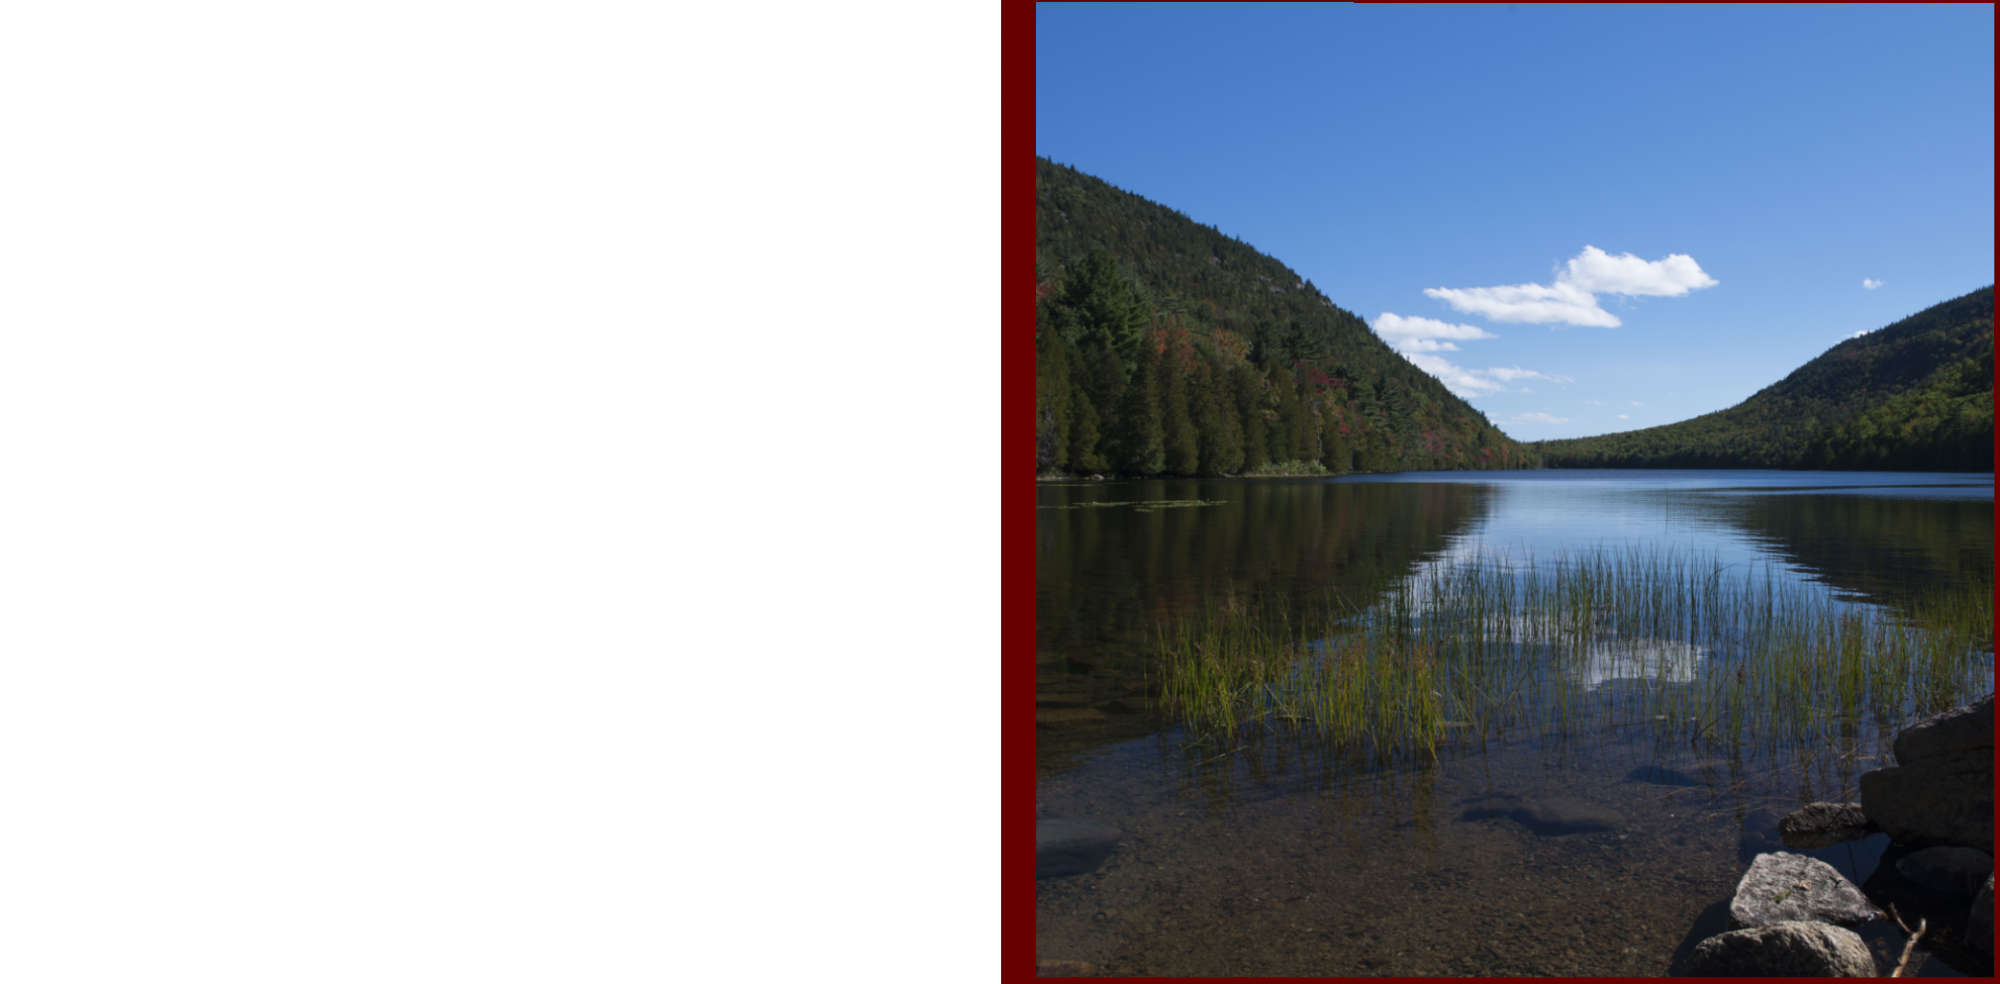 Fall in New-England Album - Pages 2-3 - Shallow waters